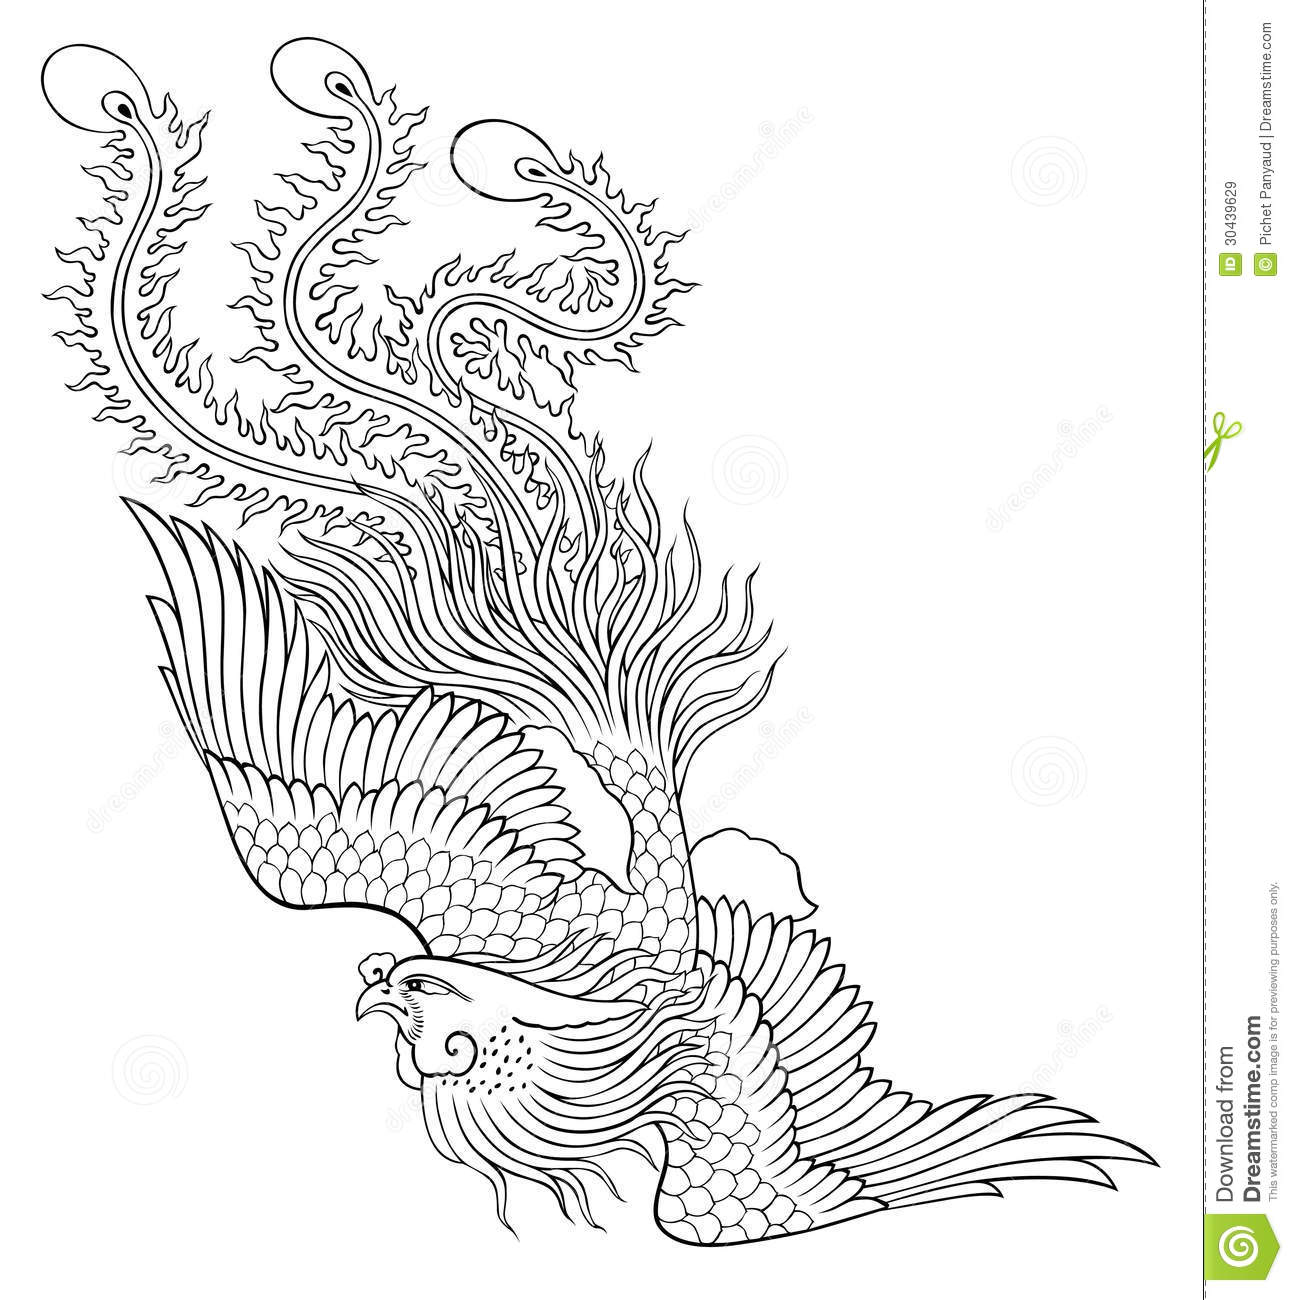 phoenix coloring pages phoenix coloring pages free at getdrawings free download coloring pages phoenix